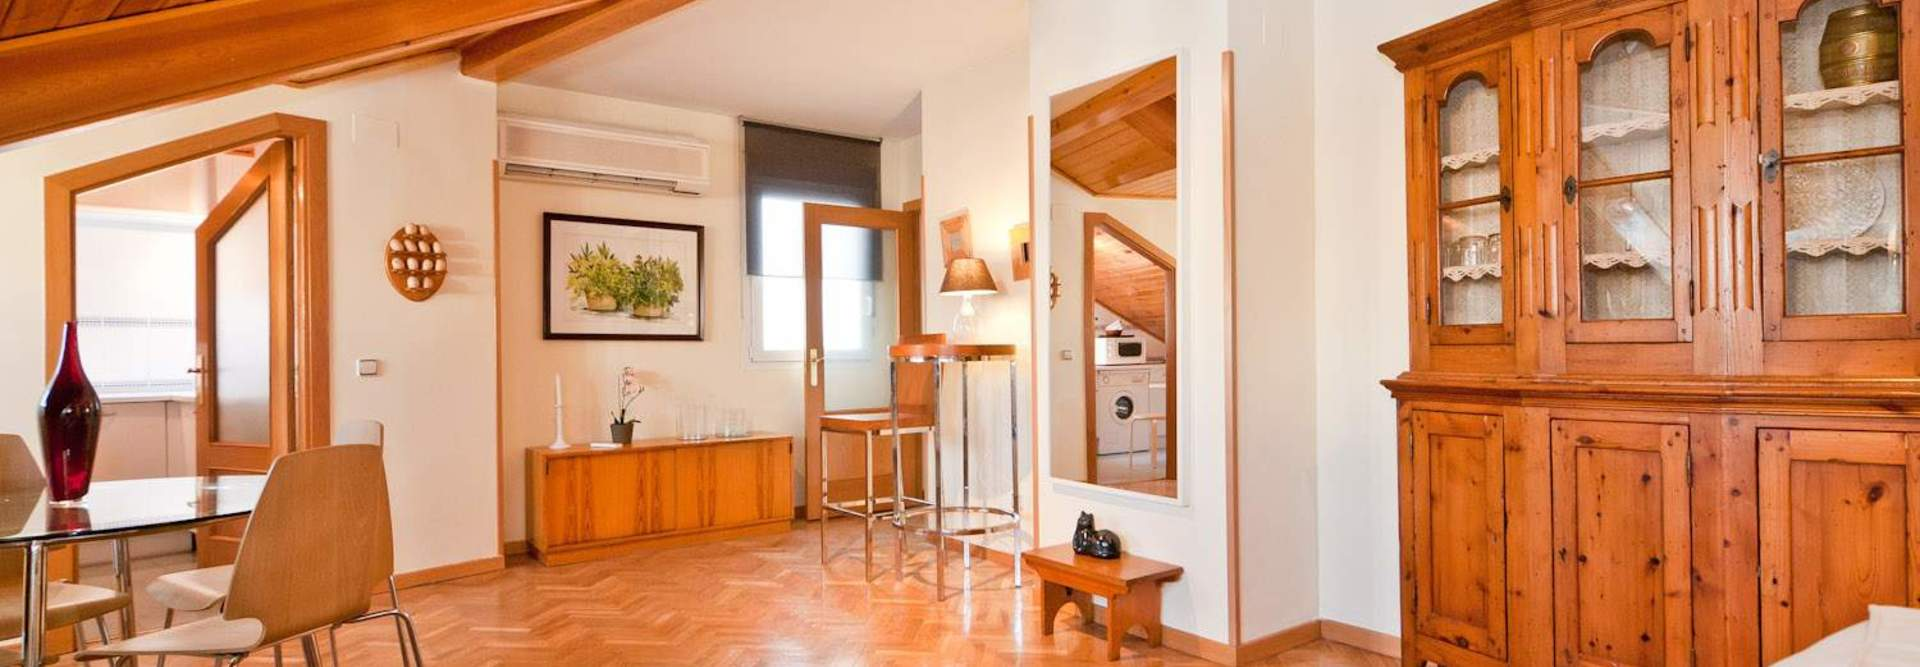 Home alquiler apartamento madrid centro mad4rent  11